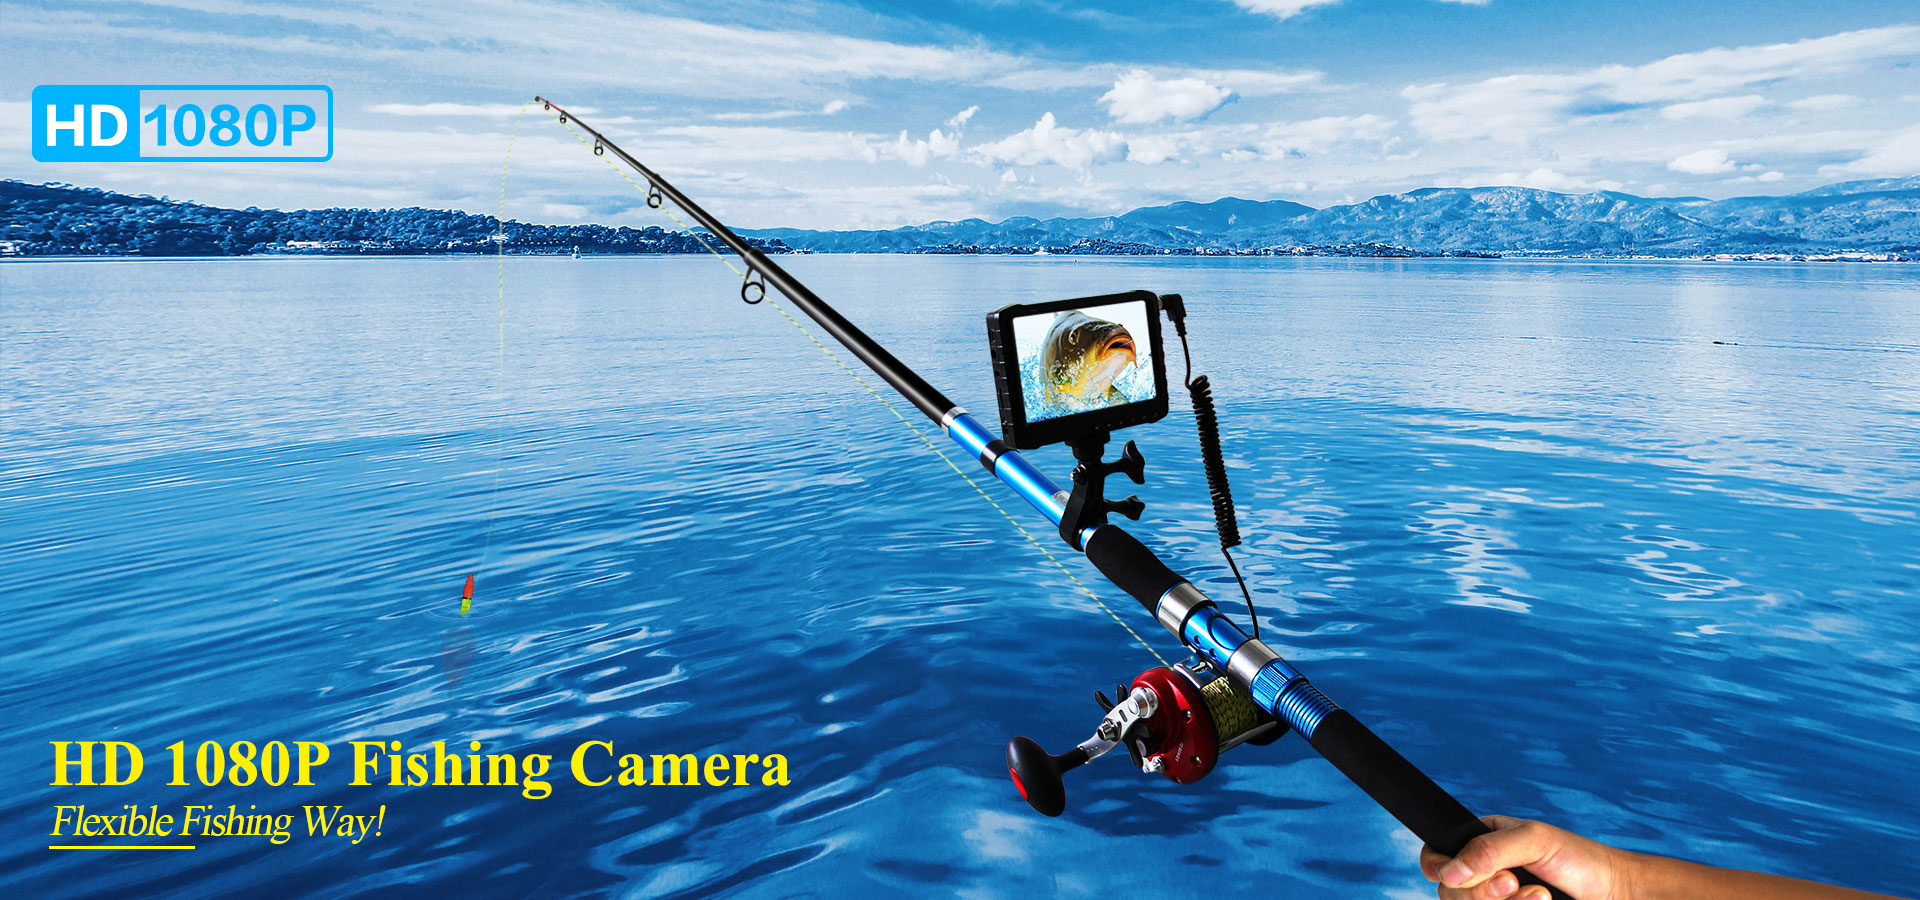 HD 1080P Fishing Camera